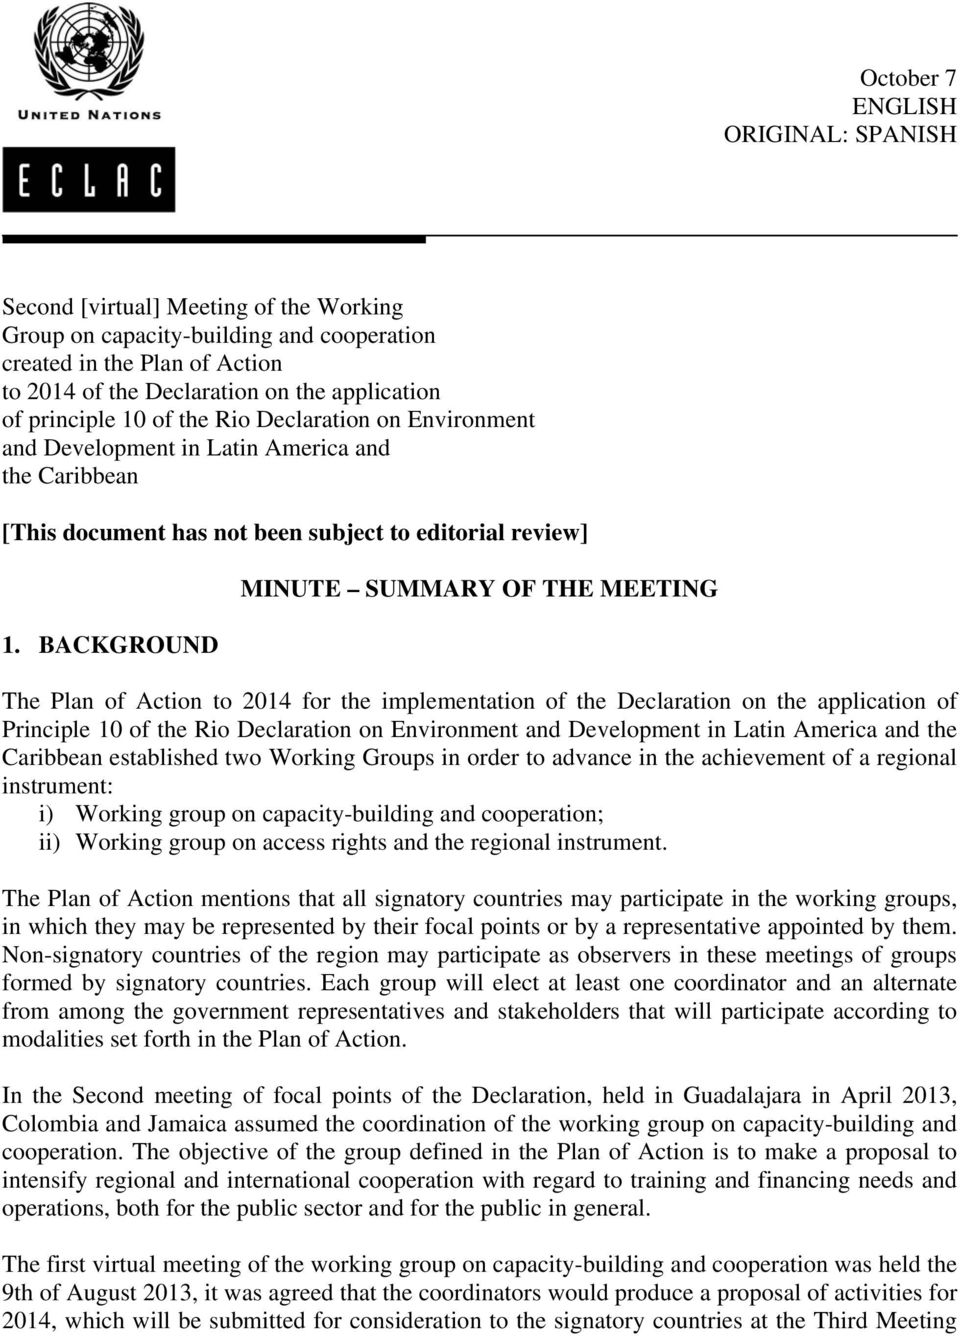 BACKGROUND MINUTE SUMMARY OF THE MEETING The Plan of Action to 2014 for the implementation of the Declaration on the application of Principle 10 of the Rio Declaration on Environment and Development